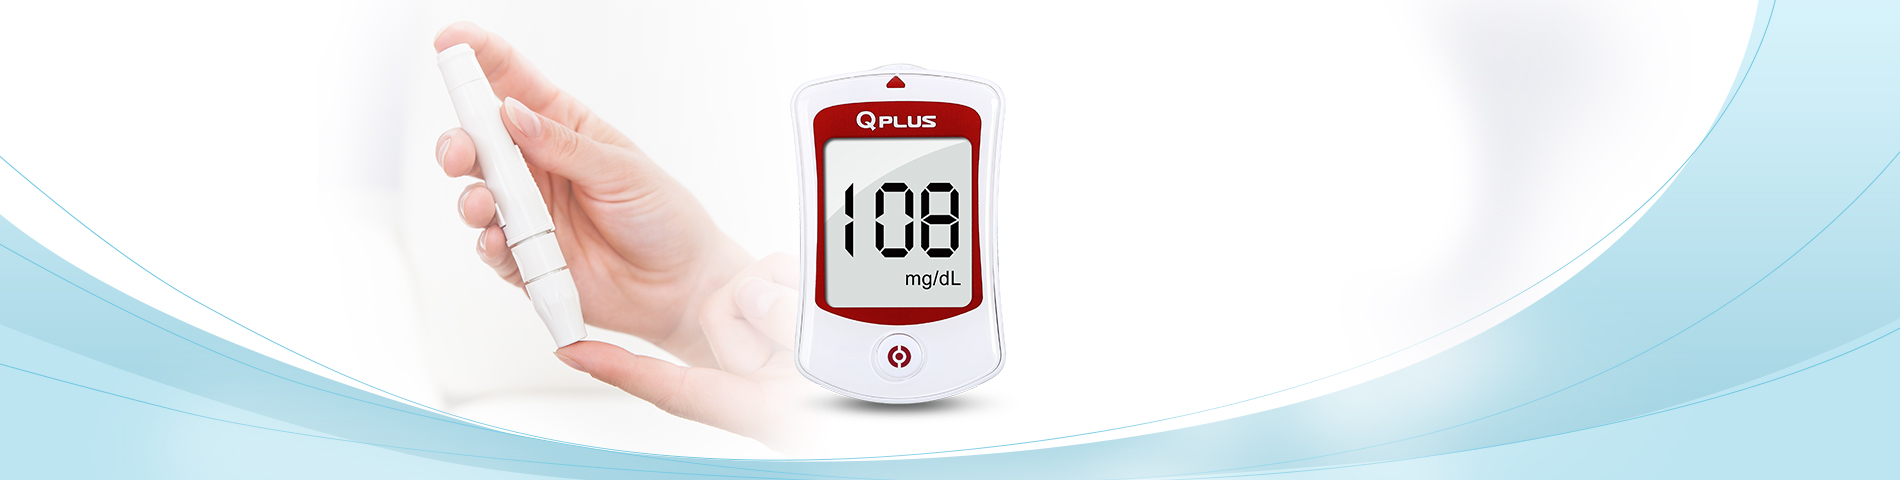 Quick Reaction & High Accuracy Qplus Glucometer Monitor blood glucose levels on a regular basis.